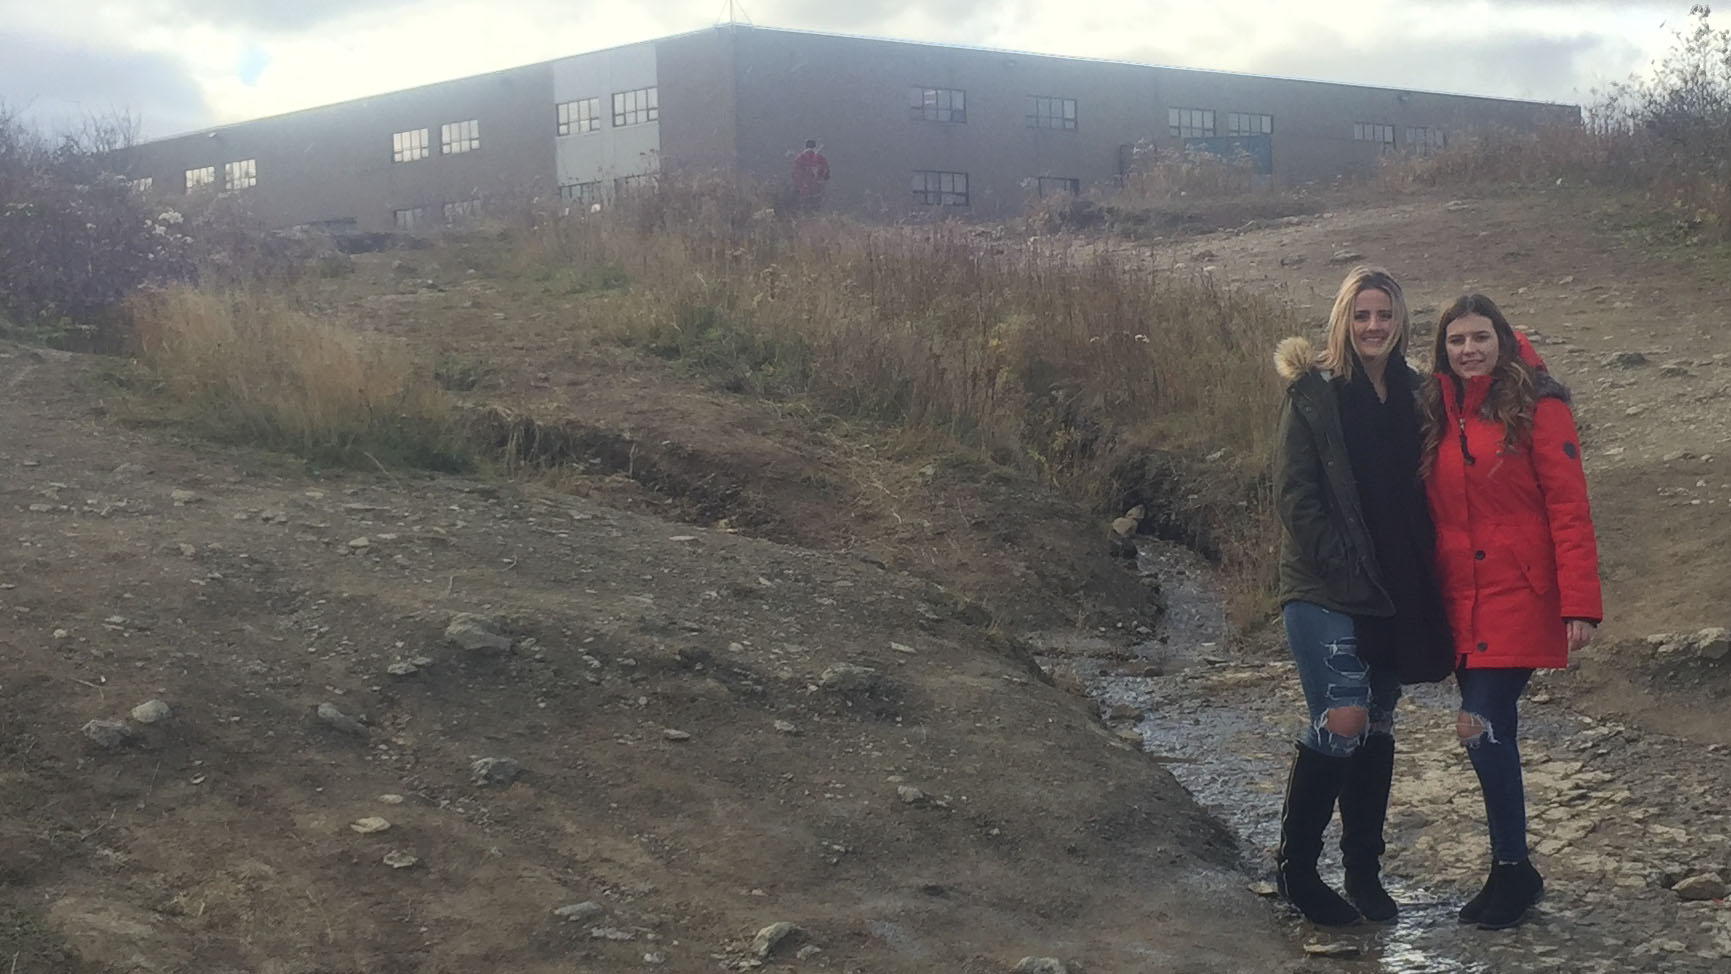 Julia White (left) and Danielle Hinchey (right) at the site of where the video was taped.